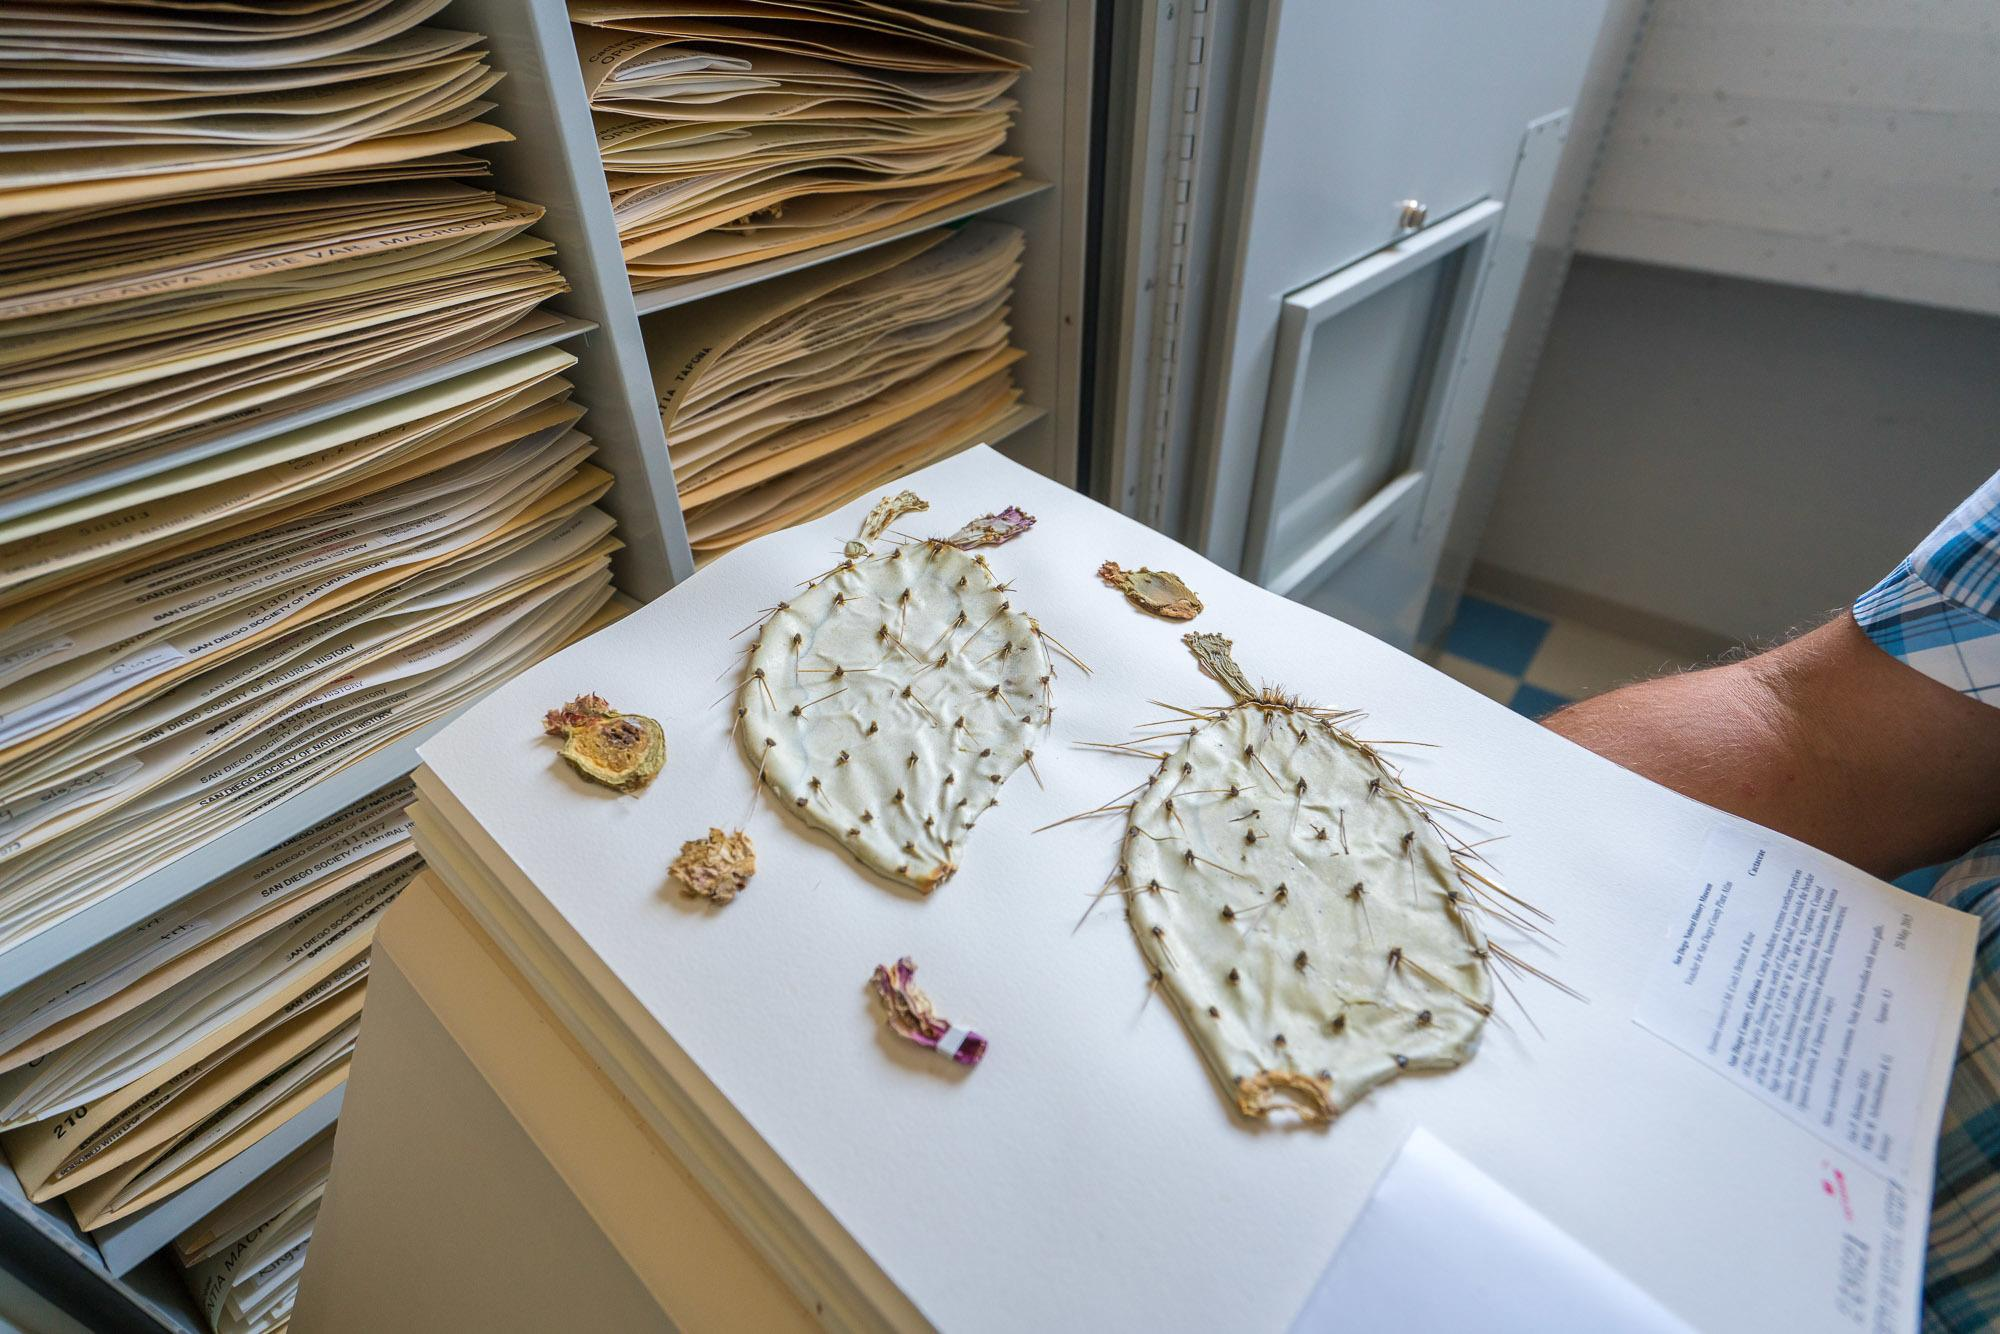 Over 250,000 plant specimens, mostly from San Diego and the Baja California peninsula are stored and used for research at the San Diego Natural History Museum.